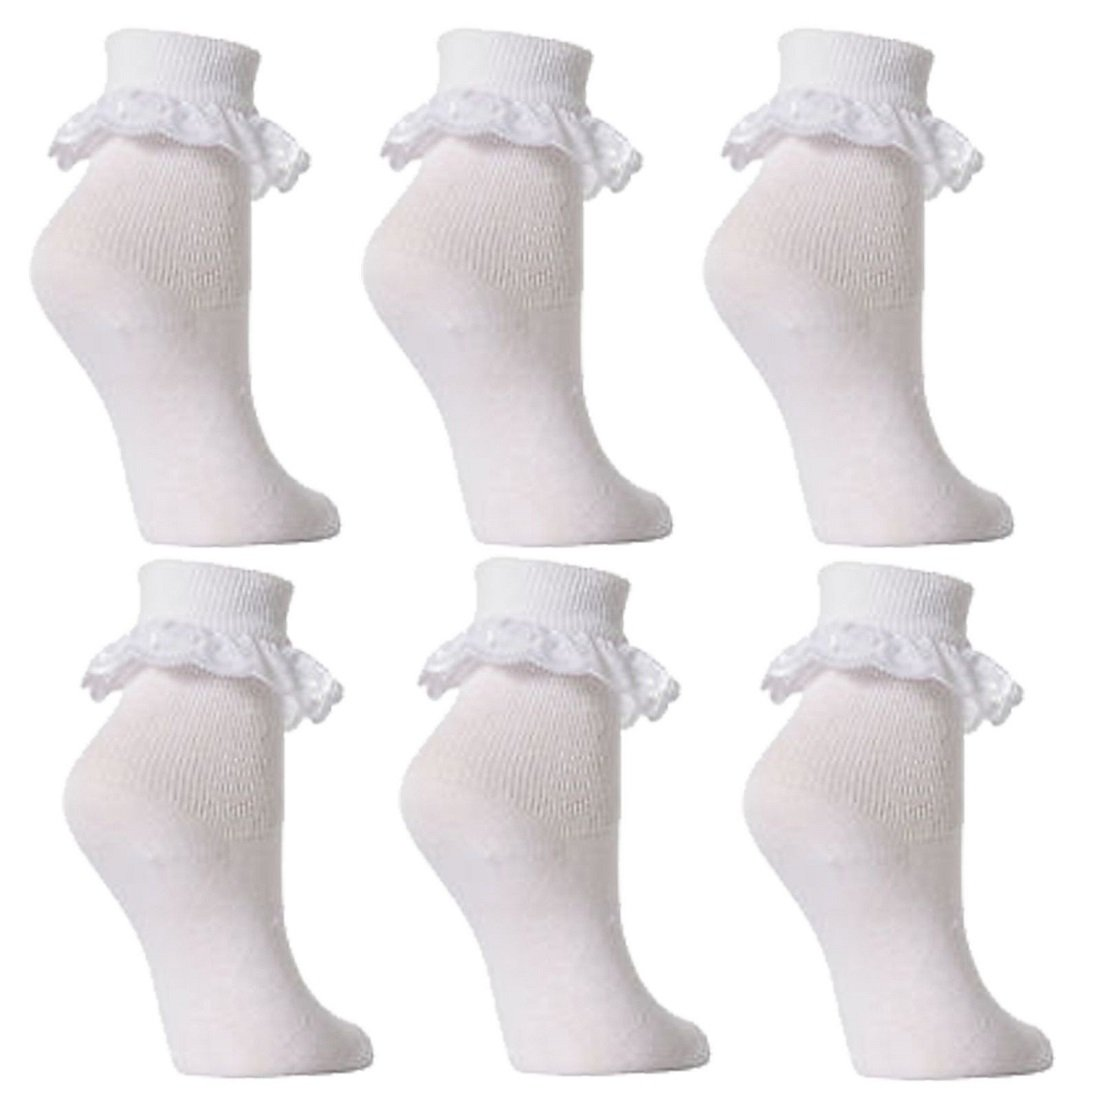 New season Baby//Girls frilly lace top socks white 6 pairs